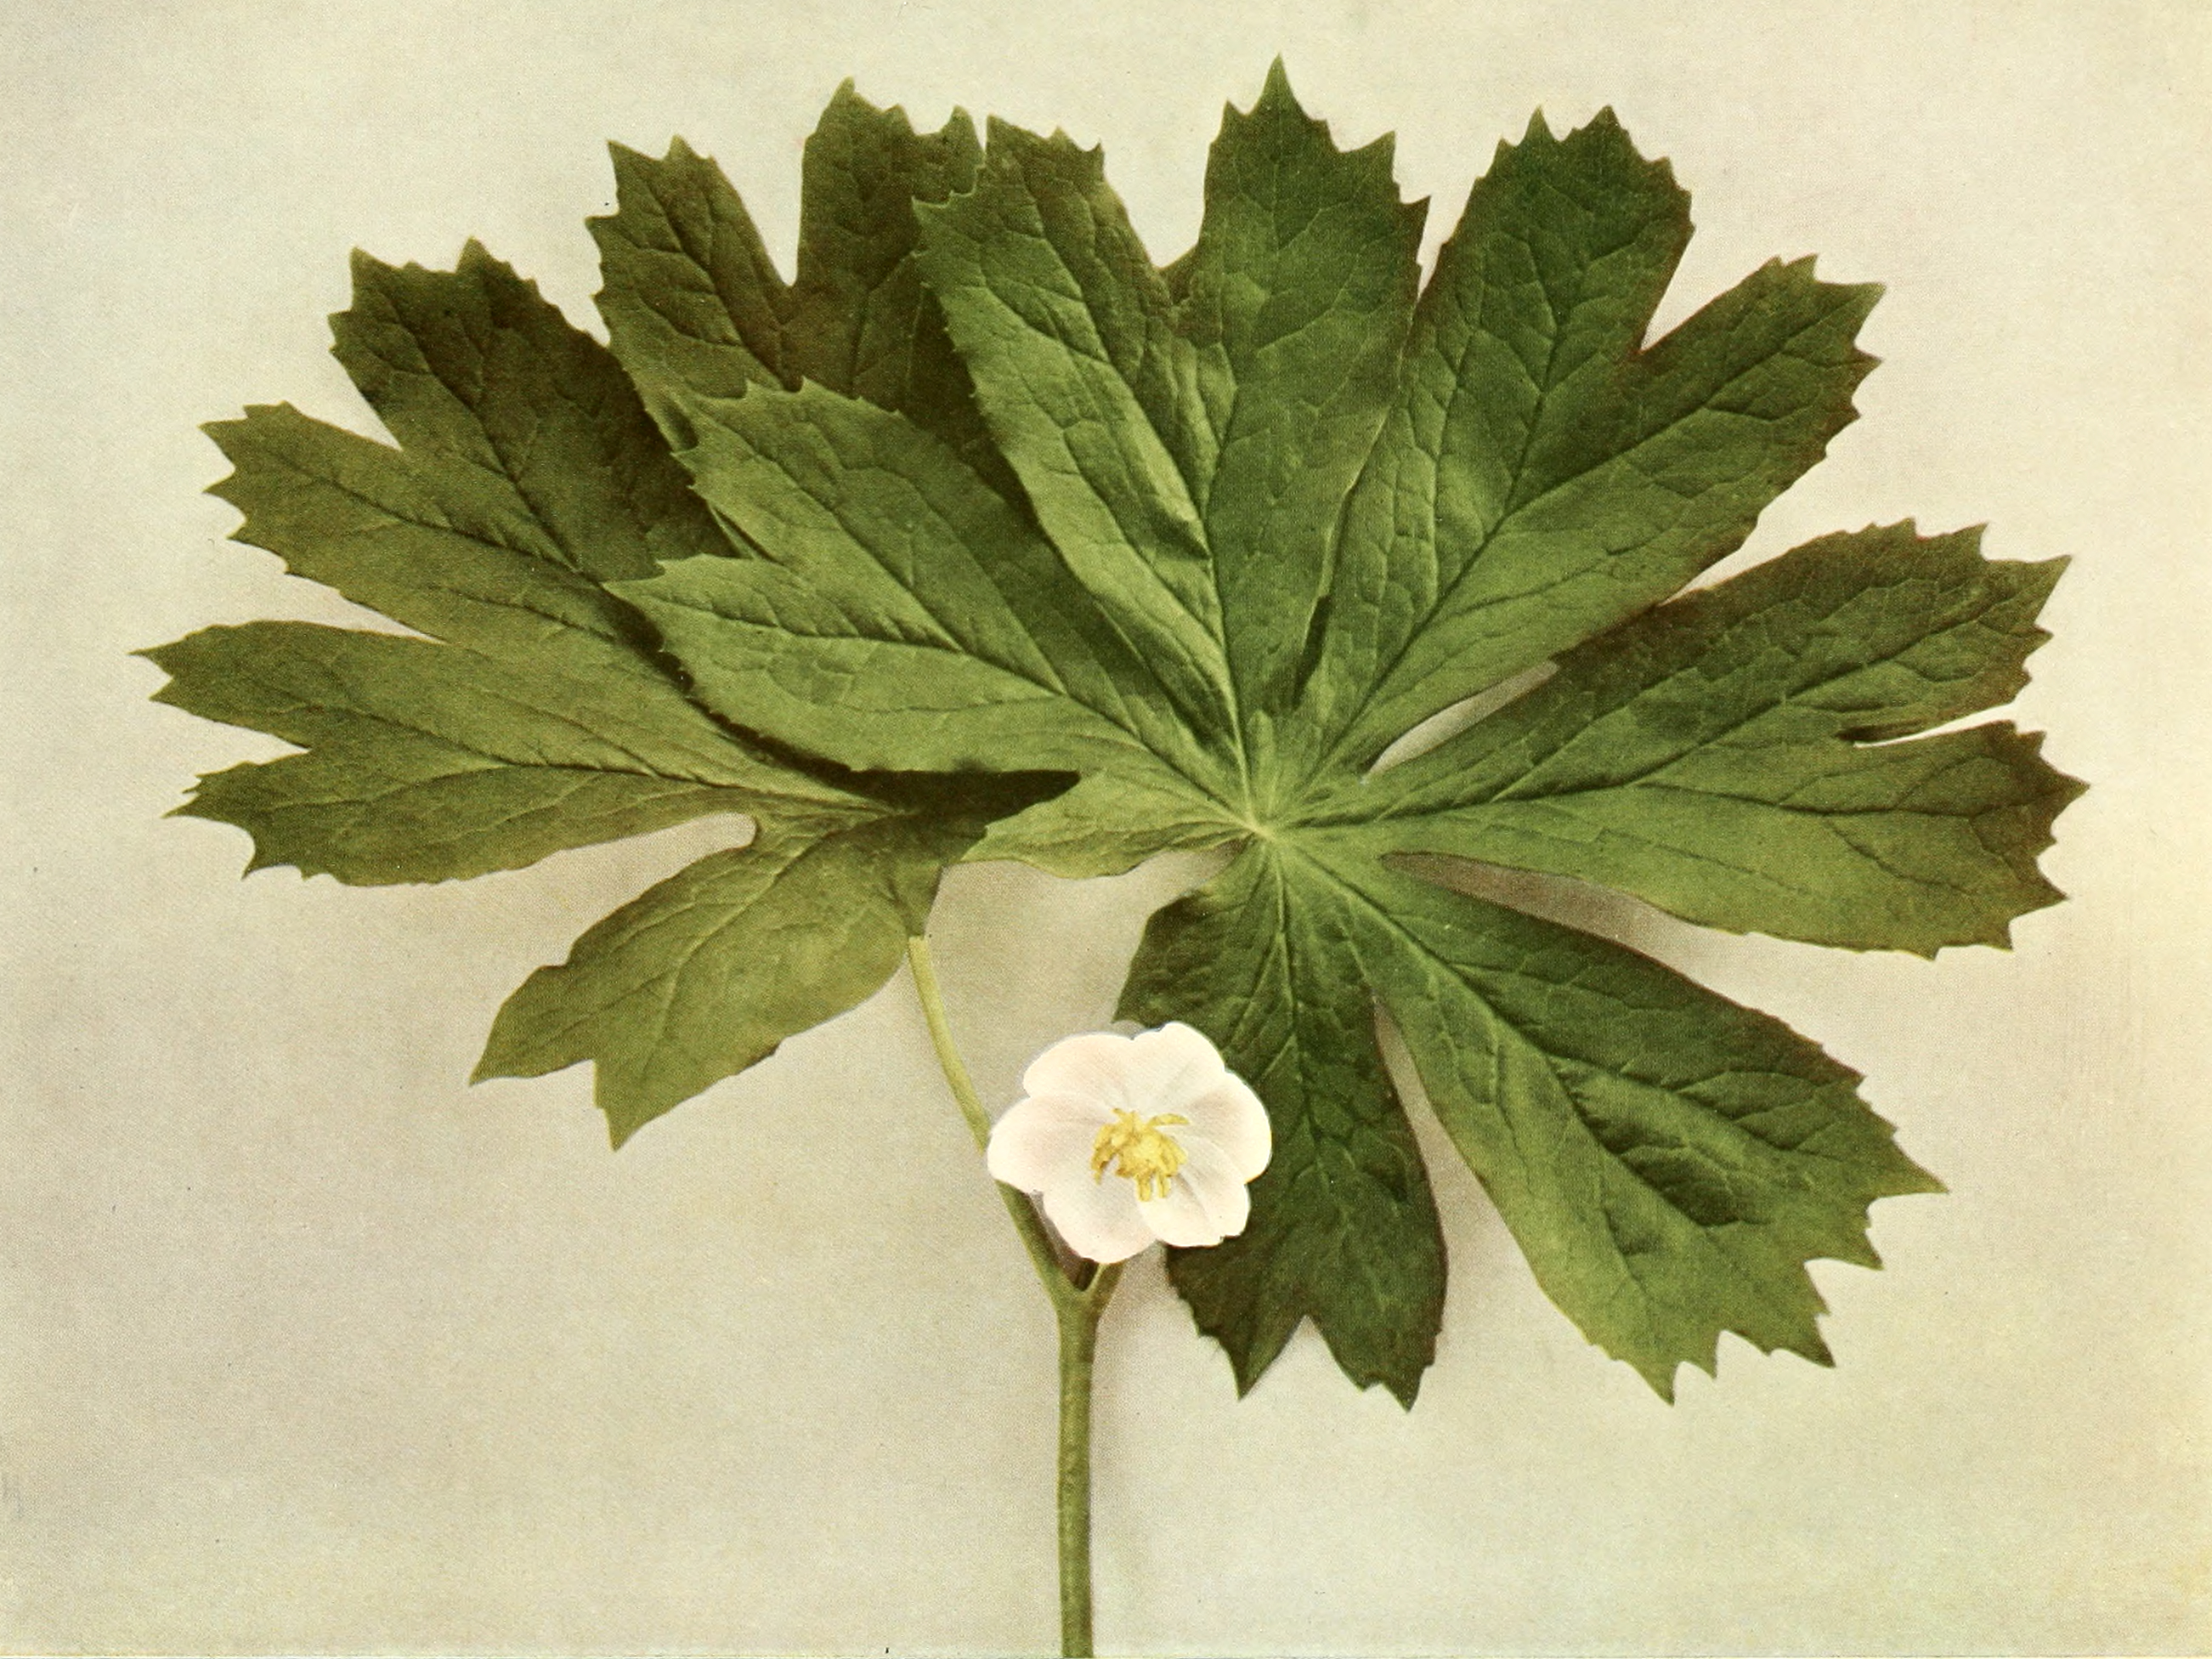 Podophyllum peltatum (mandrake, may apple)